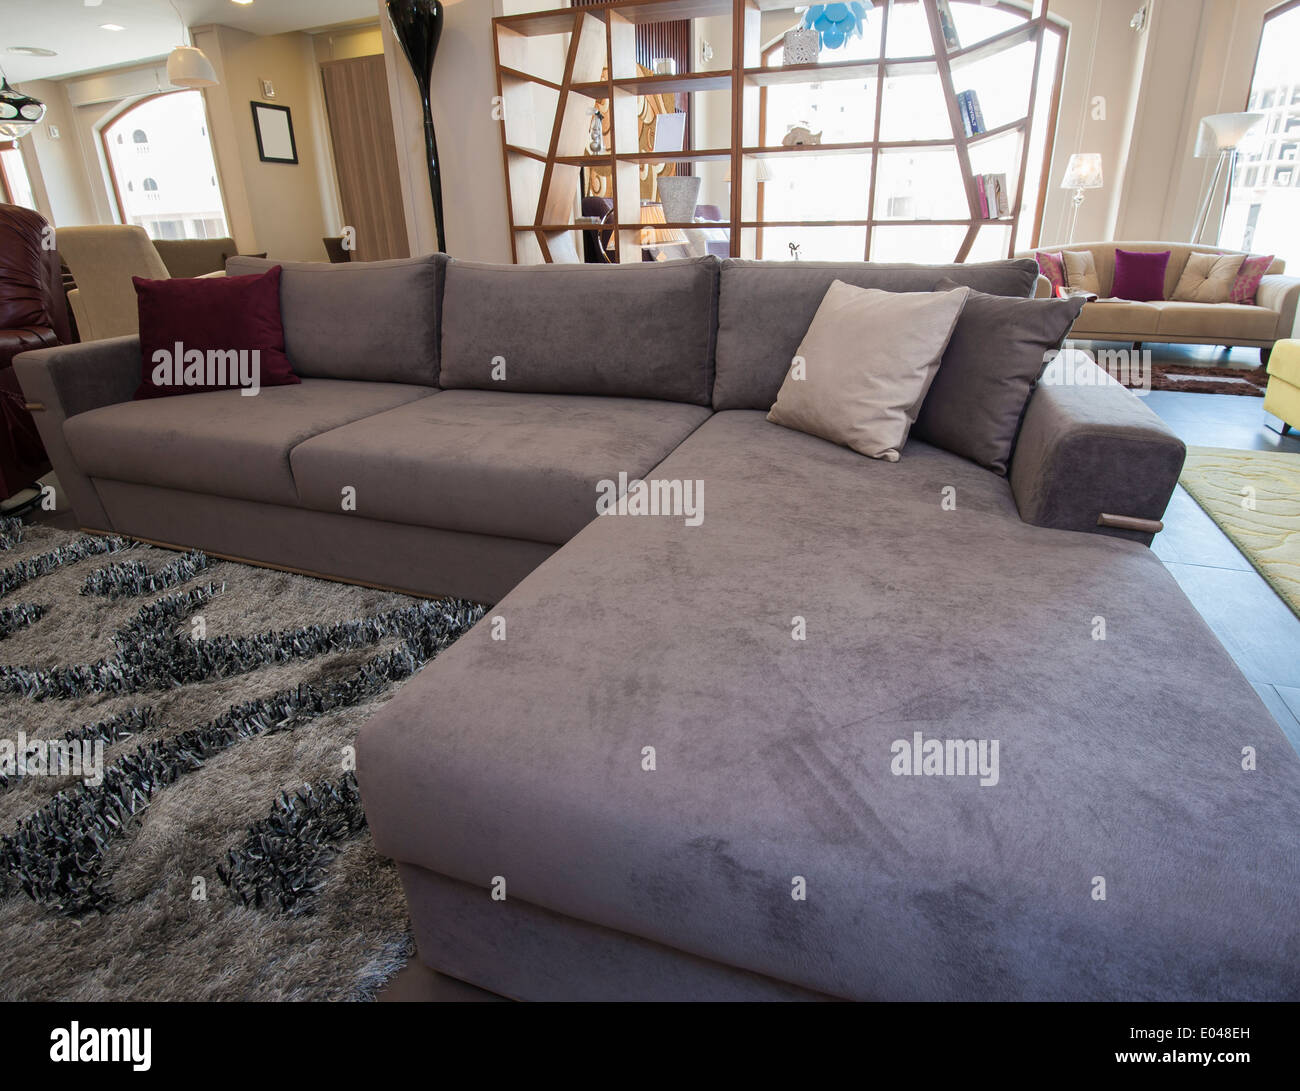 Picture of: Large L Shaped Corner Sofa In Living Room Furniture Show Home Stock Photo Alamy